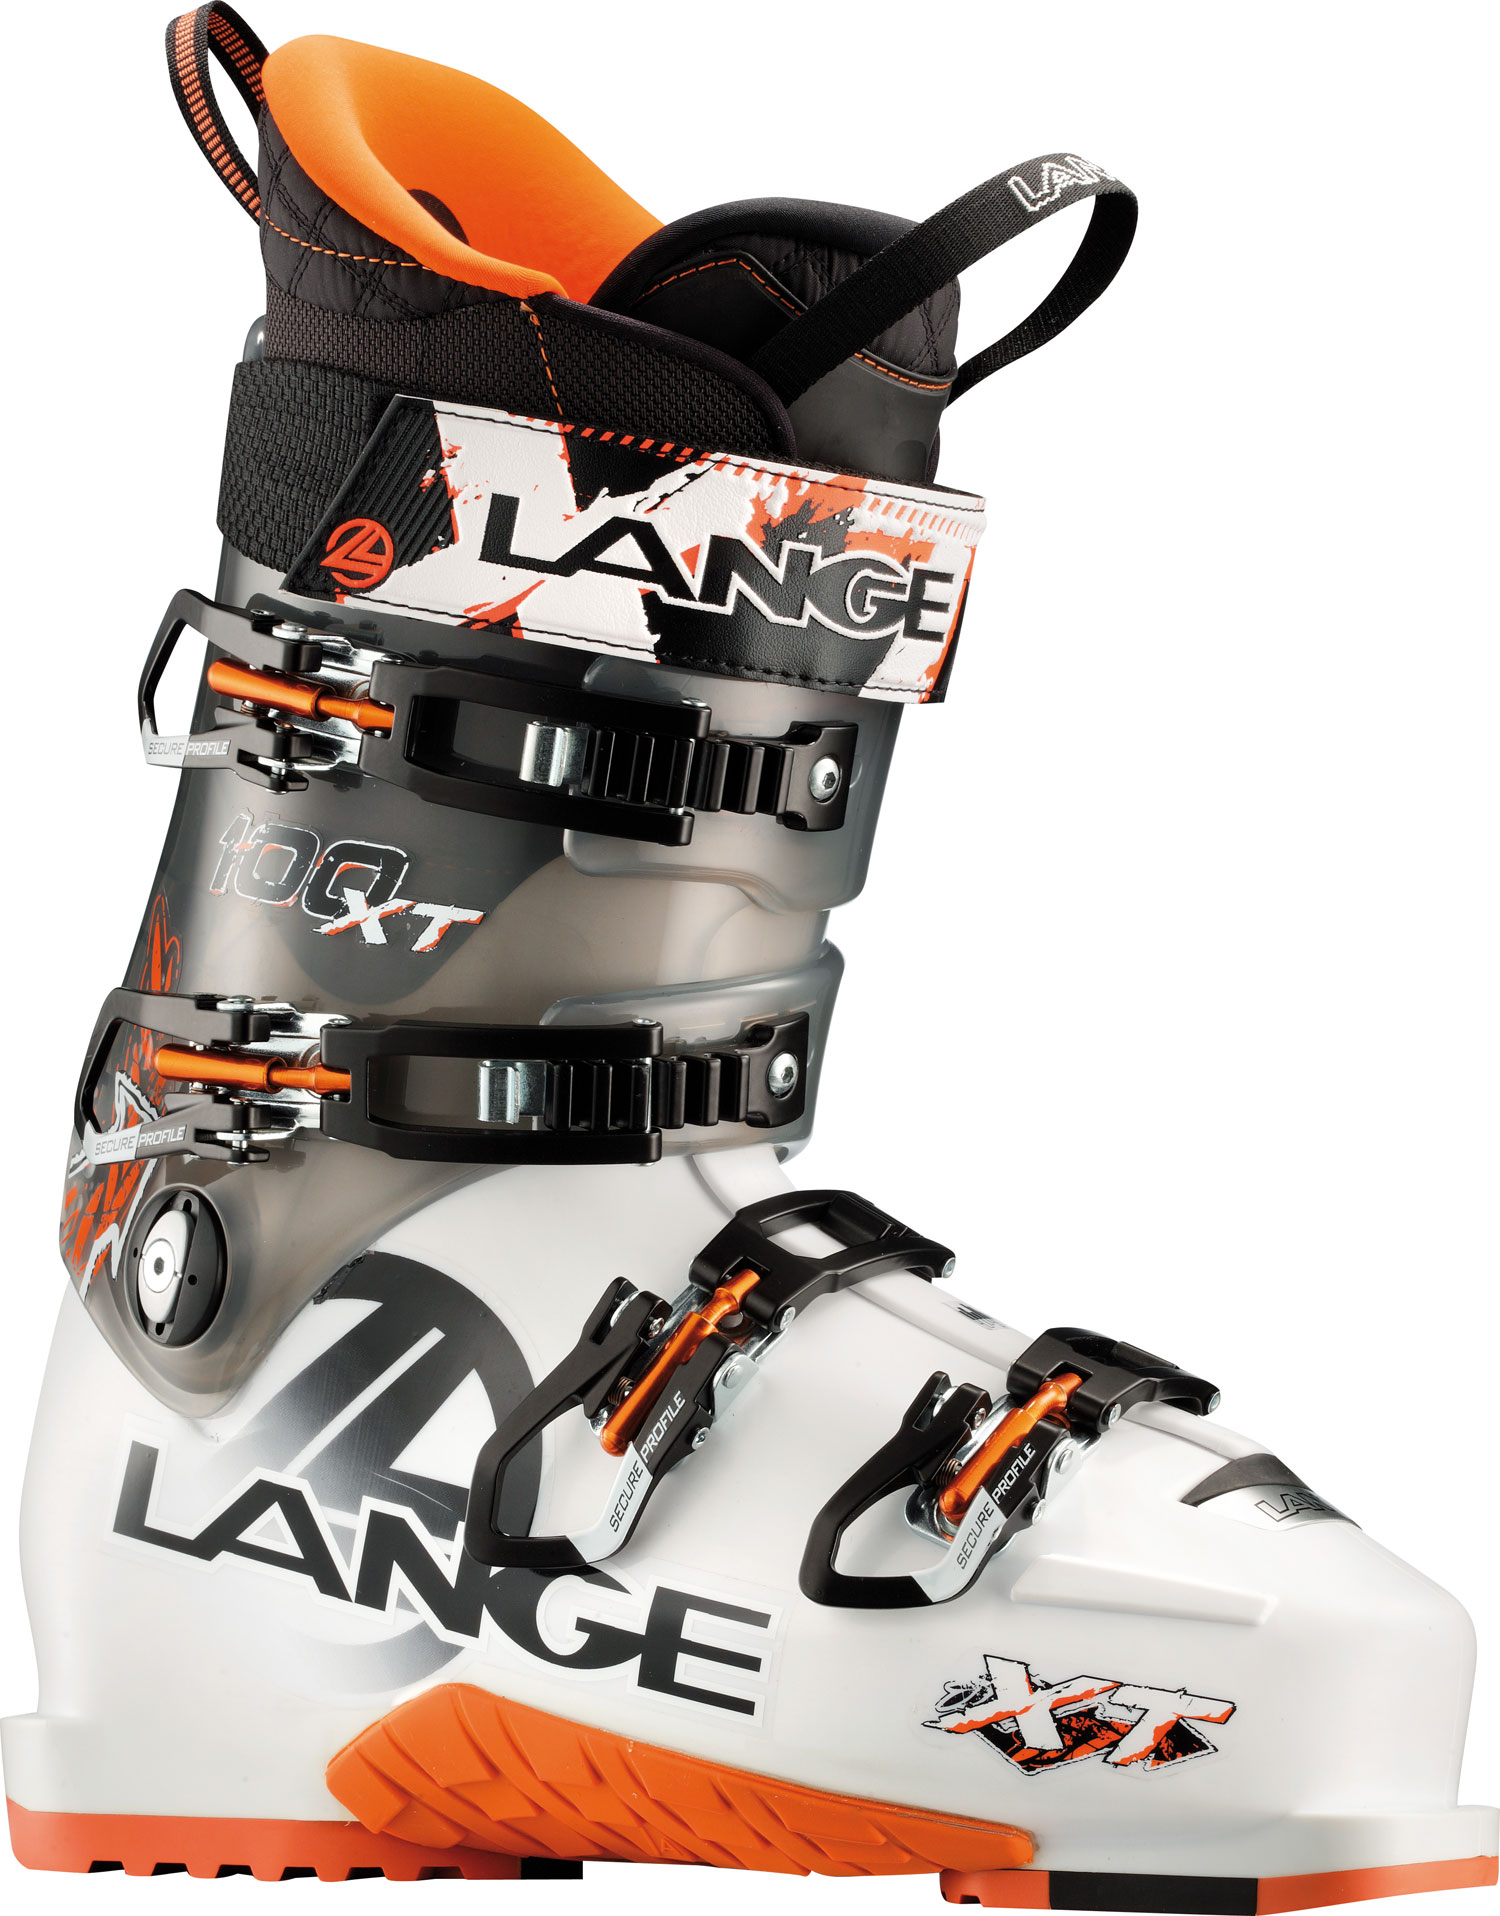 "Ski Lange's new XT boots are the first, no-compromise high-performance boots that climb. Natural Stance, mono-injected shells and Control Fit are combined with ultra-durable grip soles and arches, lightweight components, and Power V-Lock shell technology. The unique new, patented Power V-Lock provides excellent climbing range-of-motion. But, unlike all other AT and ""sidecountry"" boots, XTs feature a structurally superior, performance lower shell. The Power V-Lock integrates into the lower shell for powerful downhill high-performance skiing. XT boots are the first-of-their-kind, no-compromise freeride-adventure boots for committed skiers. Key Features of the Lange XT 100 Ski Boots: Last Width 97mm / 100mm Flex Index 100 Liner Light Weight, Control Fit, Laced Canting +/- 1,5 degree Power Strap 40mm Shell Material Polyurethane Cuff Material Polyolefin Hp Soles Max Grip Sole, Ultra Grip Arch - $425.95"